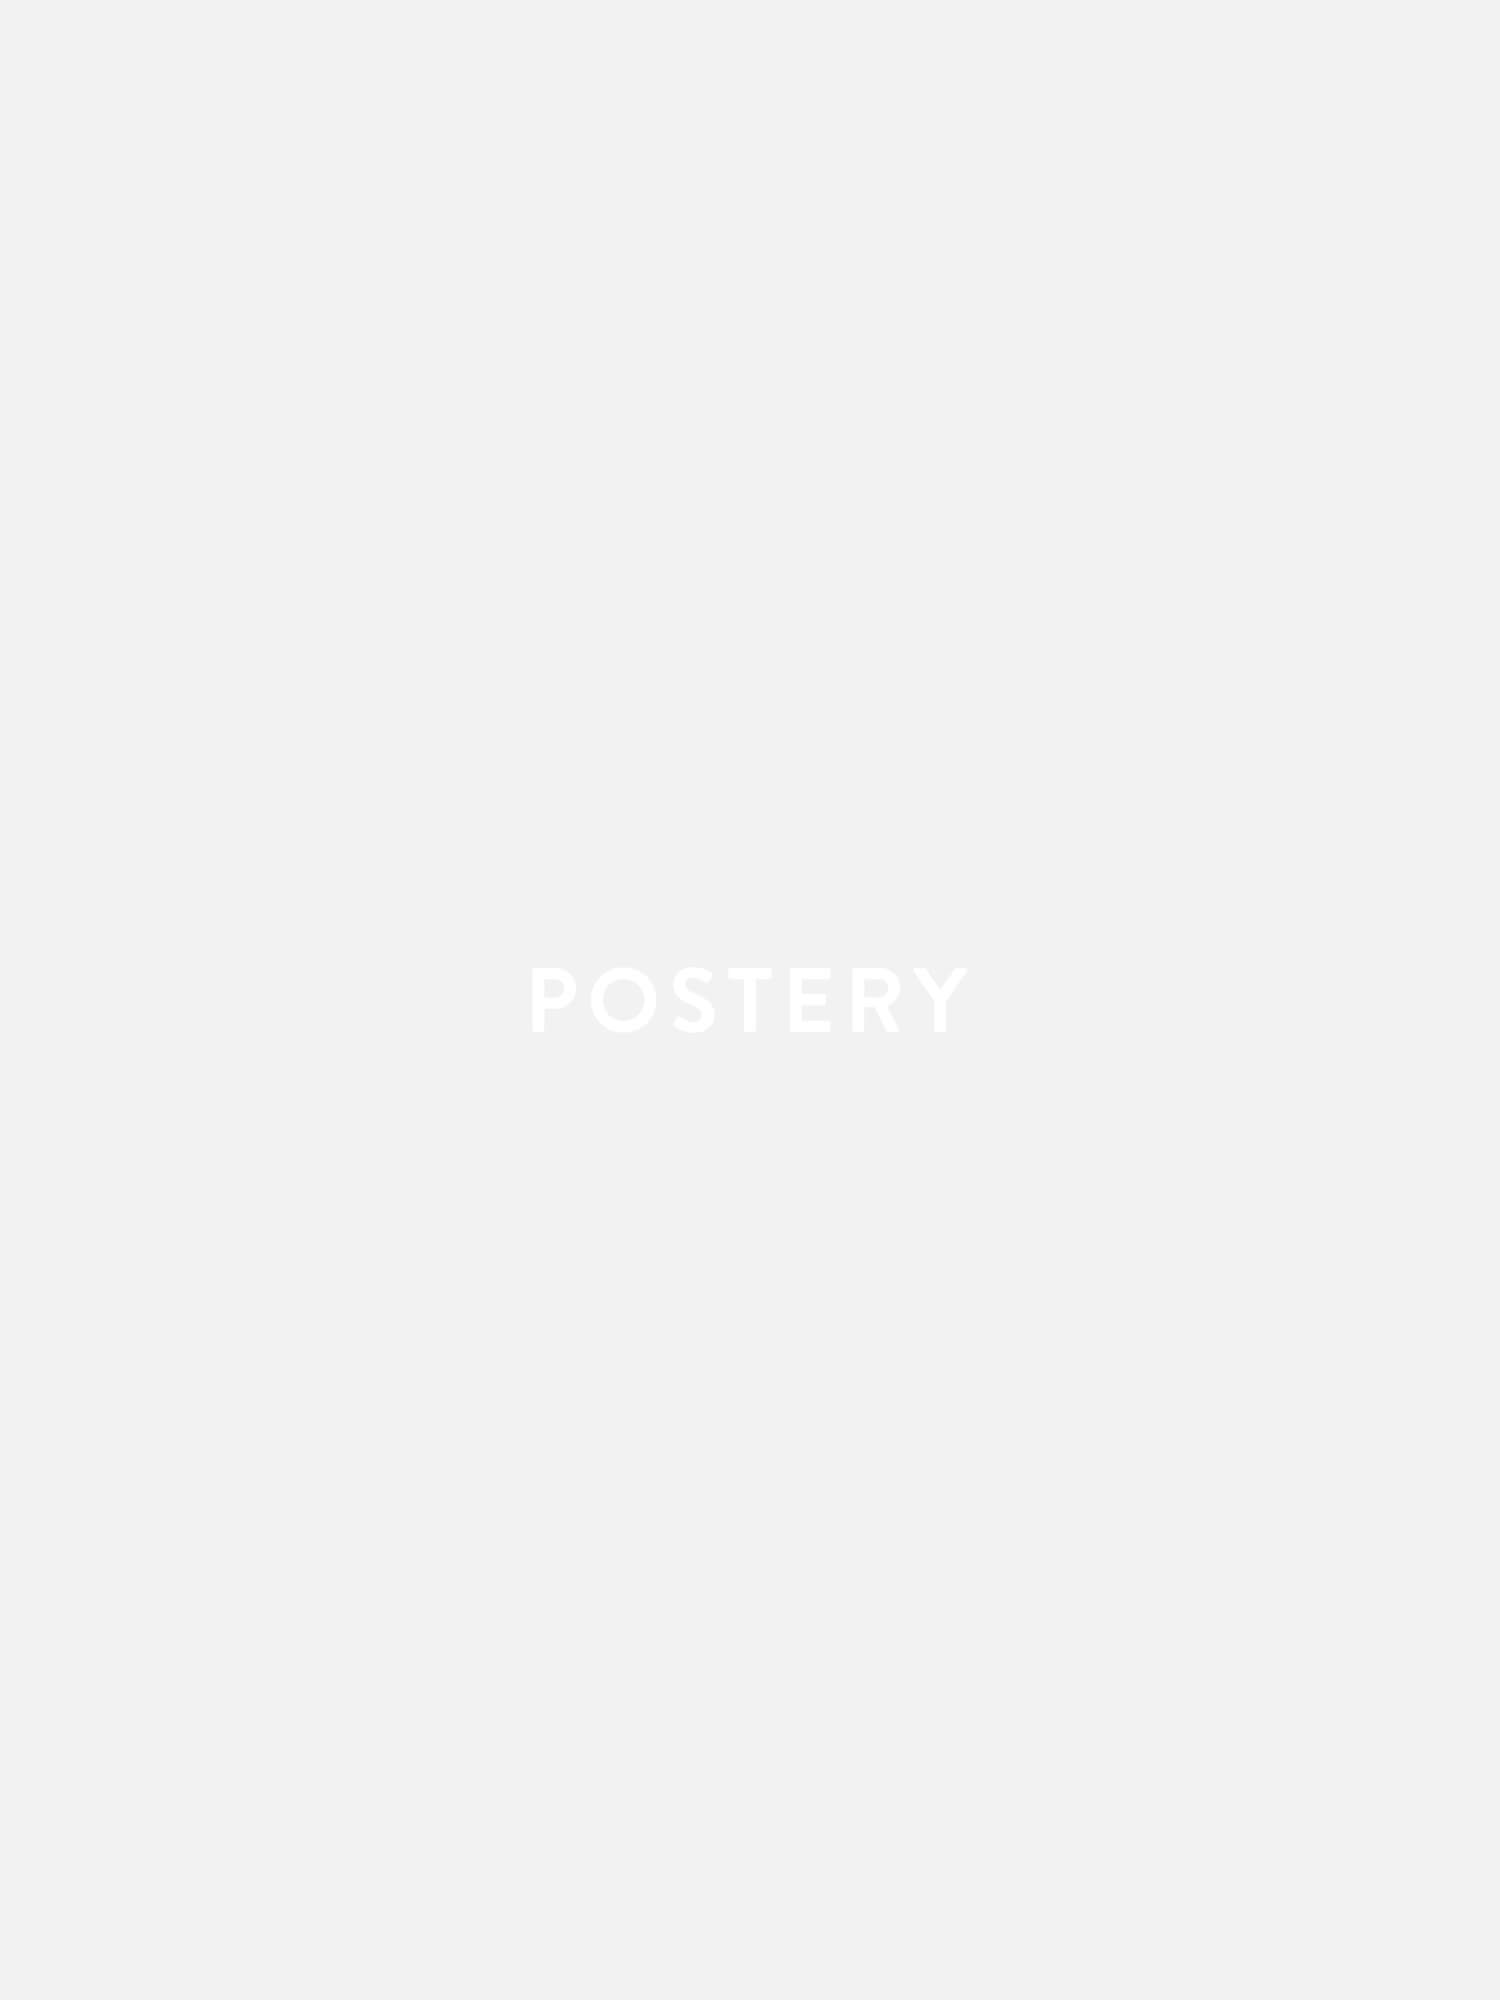 Espresso Morning Poster